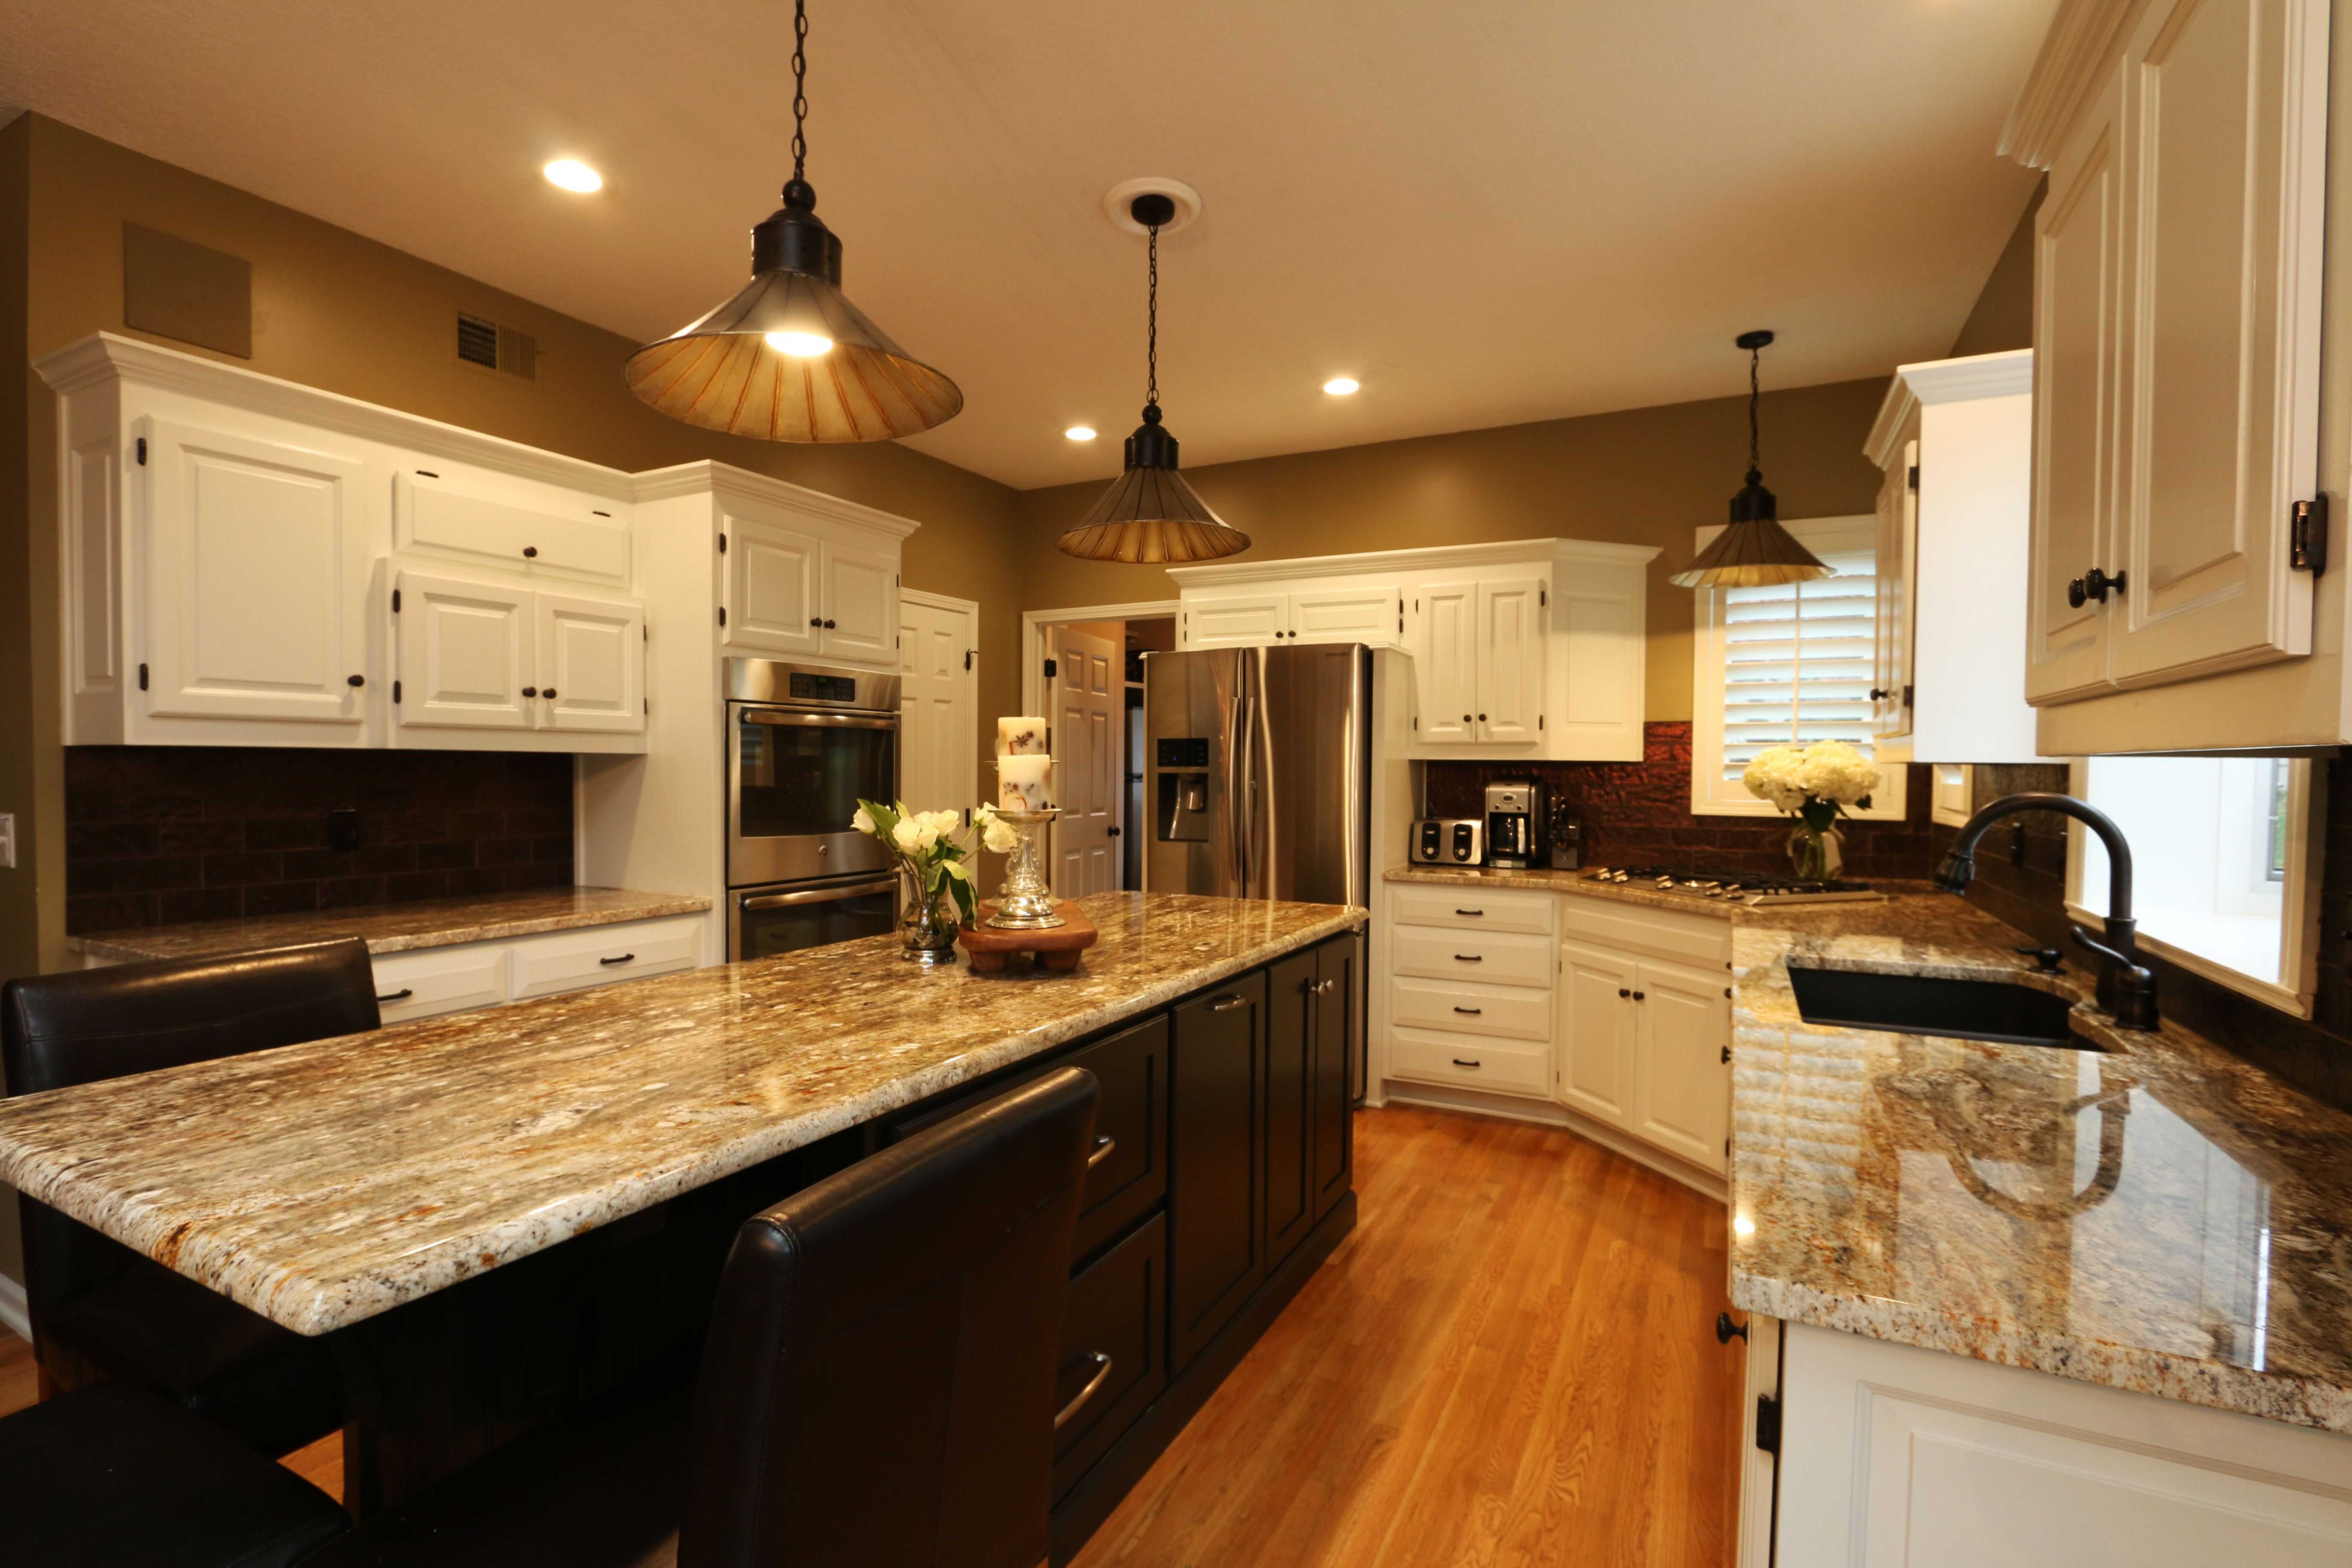 Hand Made Transitional Kitchen Island by Belak Woodworking ...